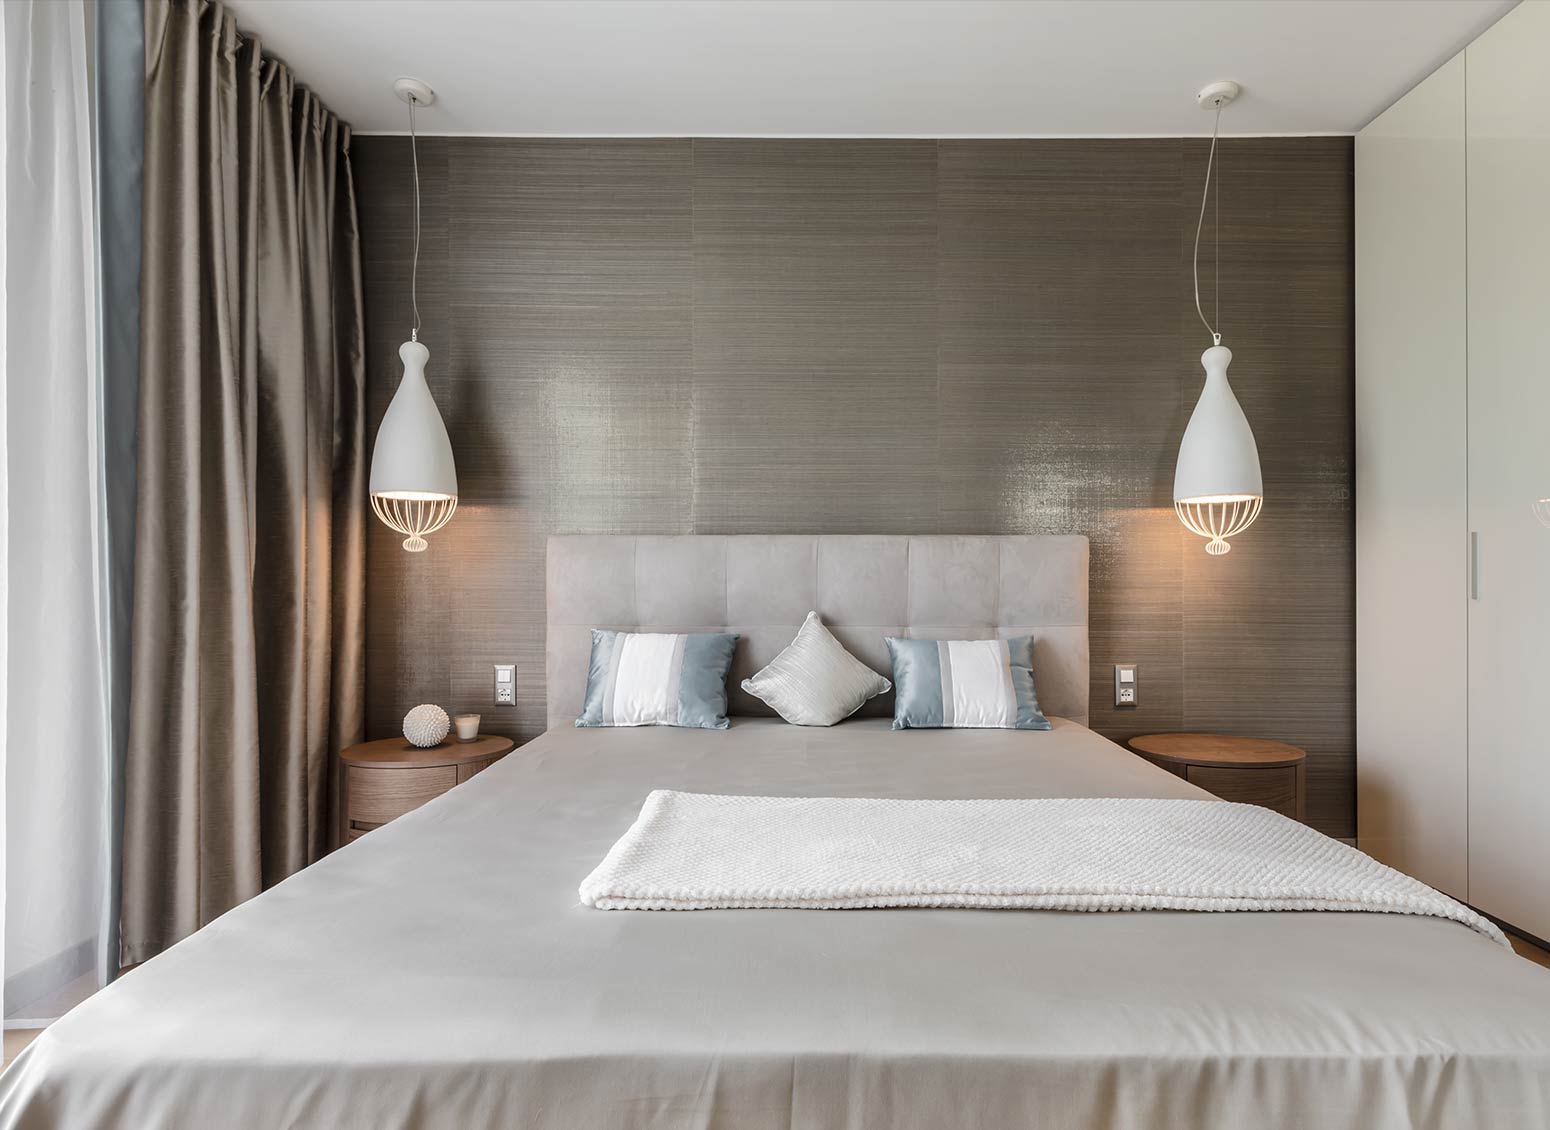 10 modern suspension lamps for the bedroom by Karman